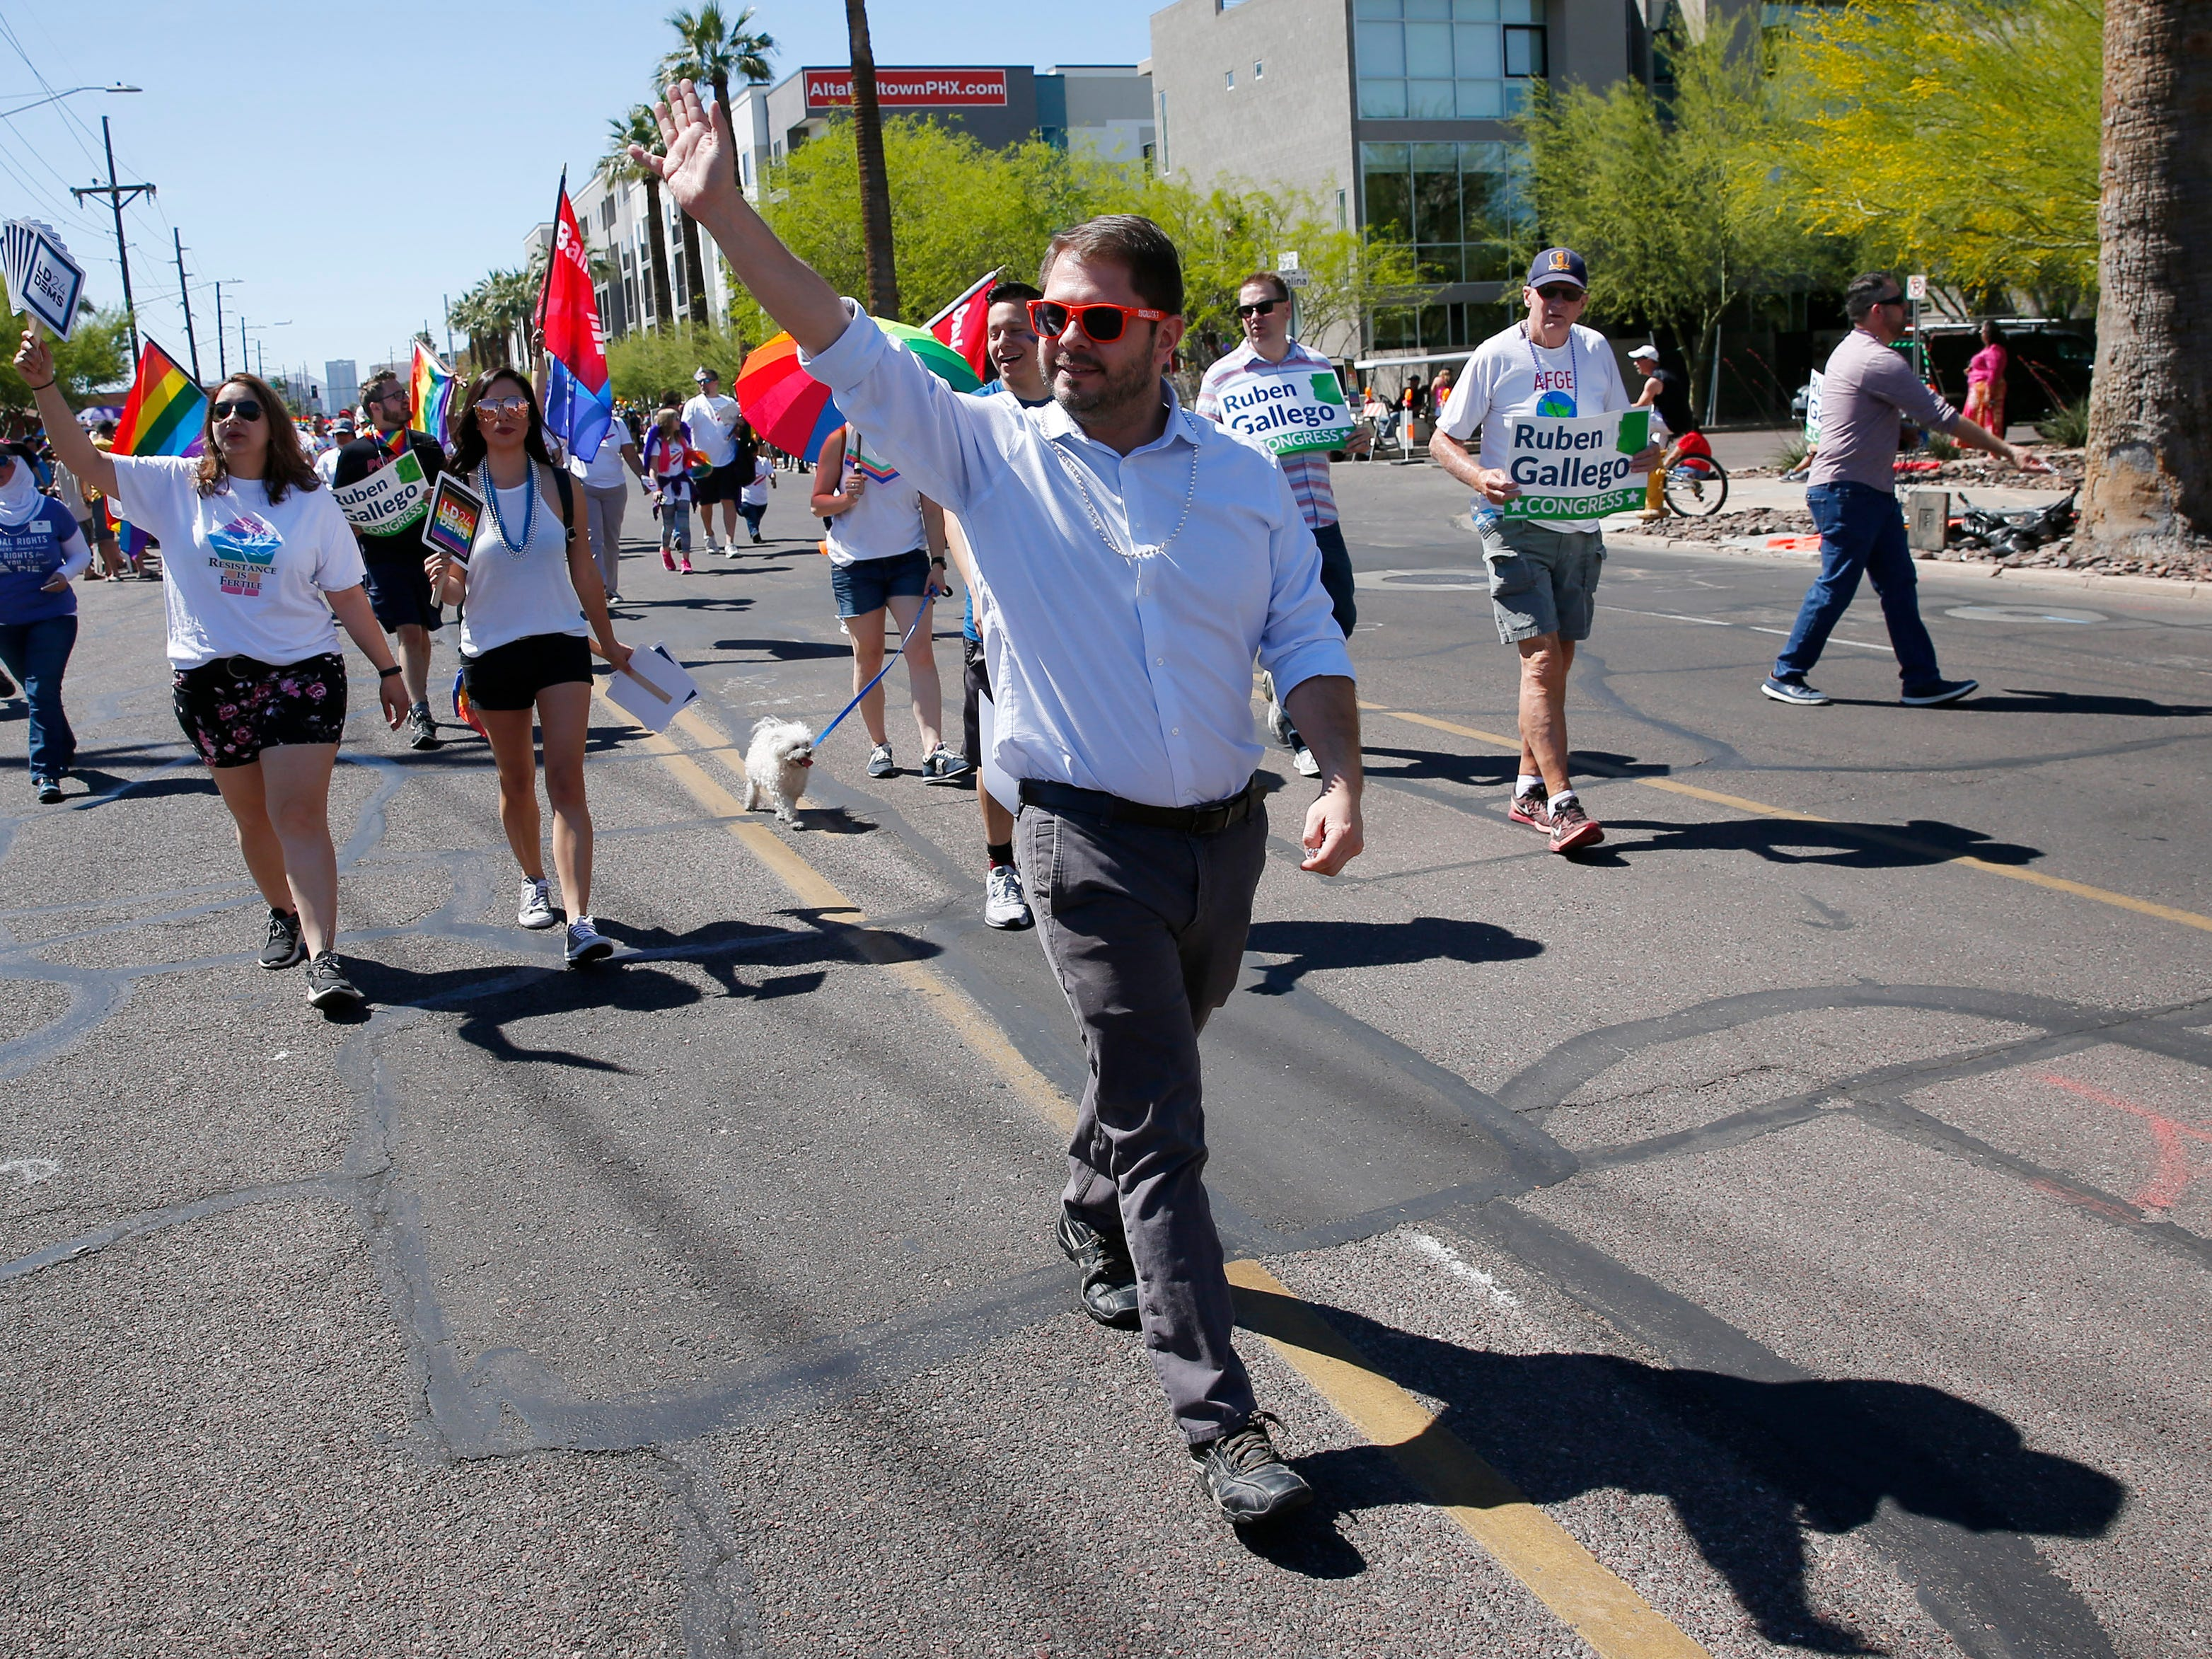 Congressman Ruben Gallego waves during the Phoenix Pride Parade on April 7, 2019.